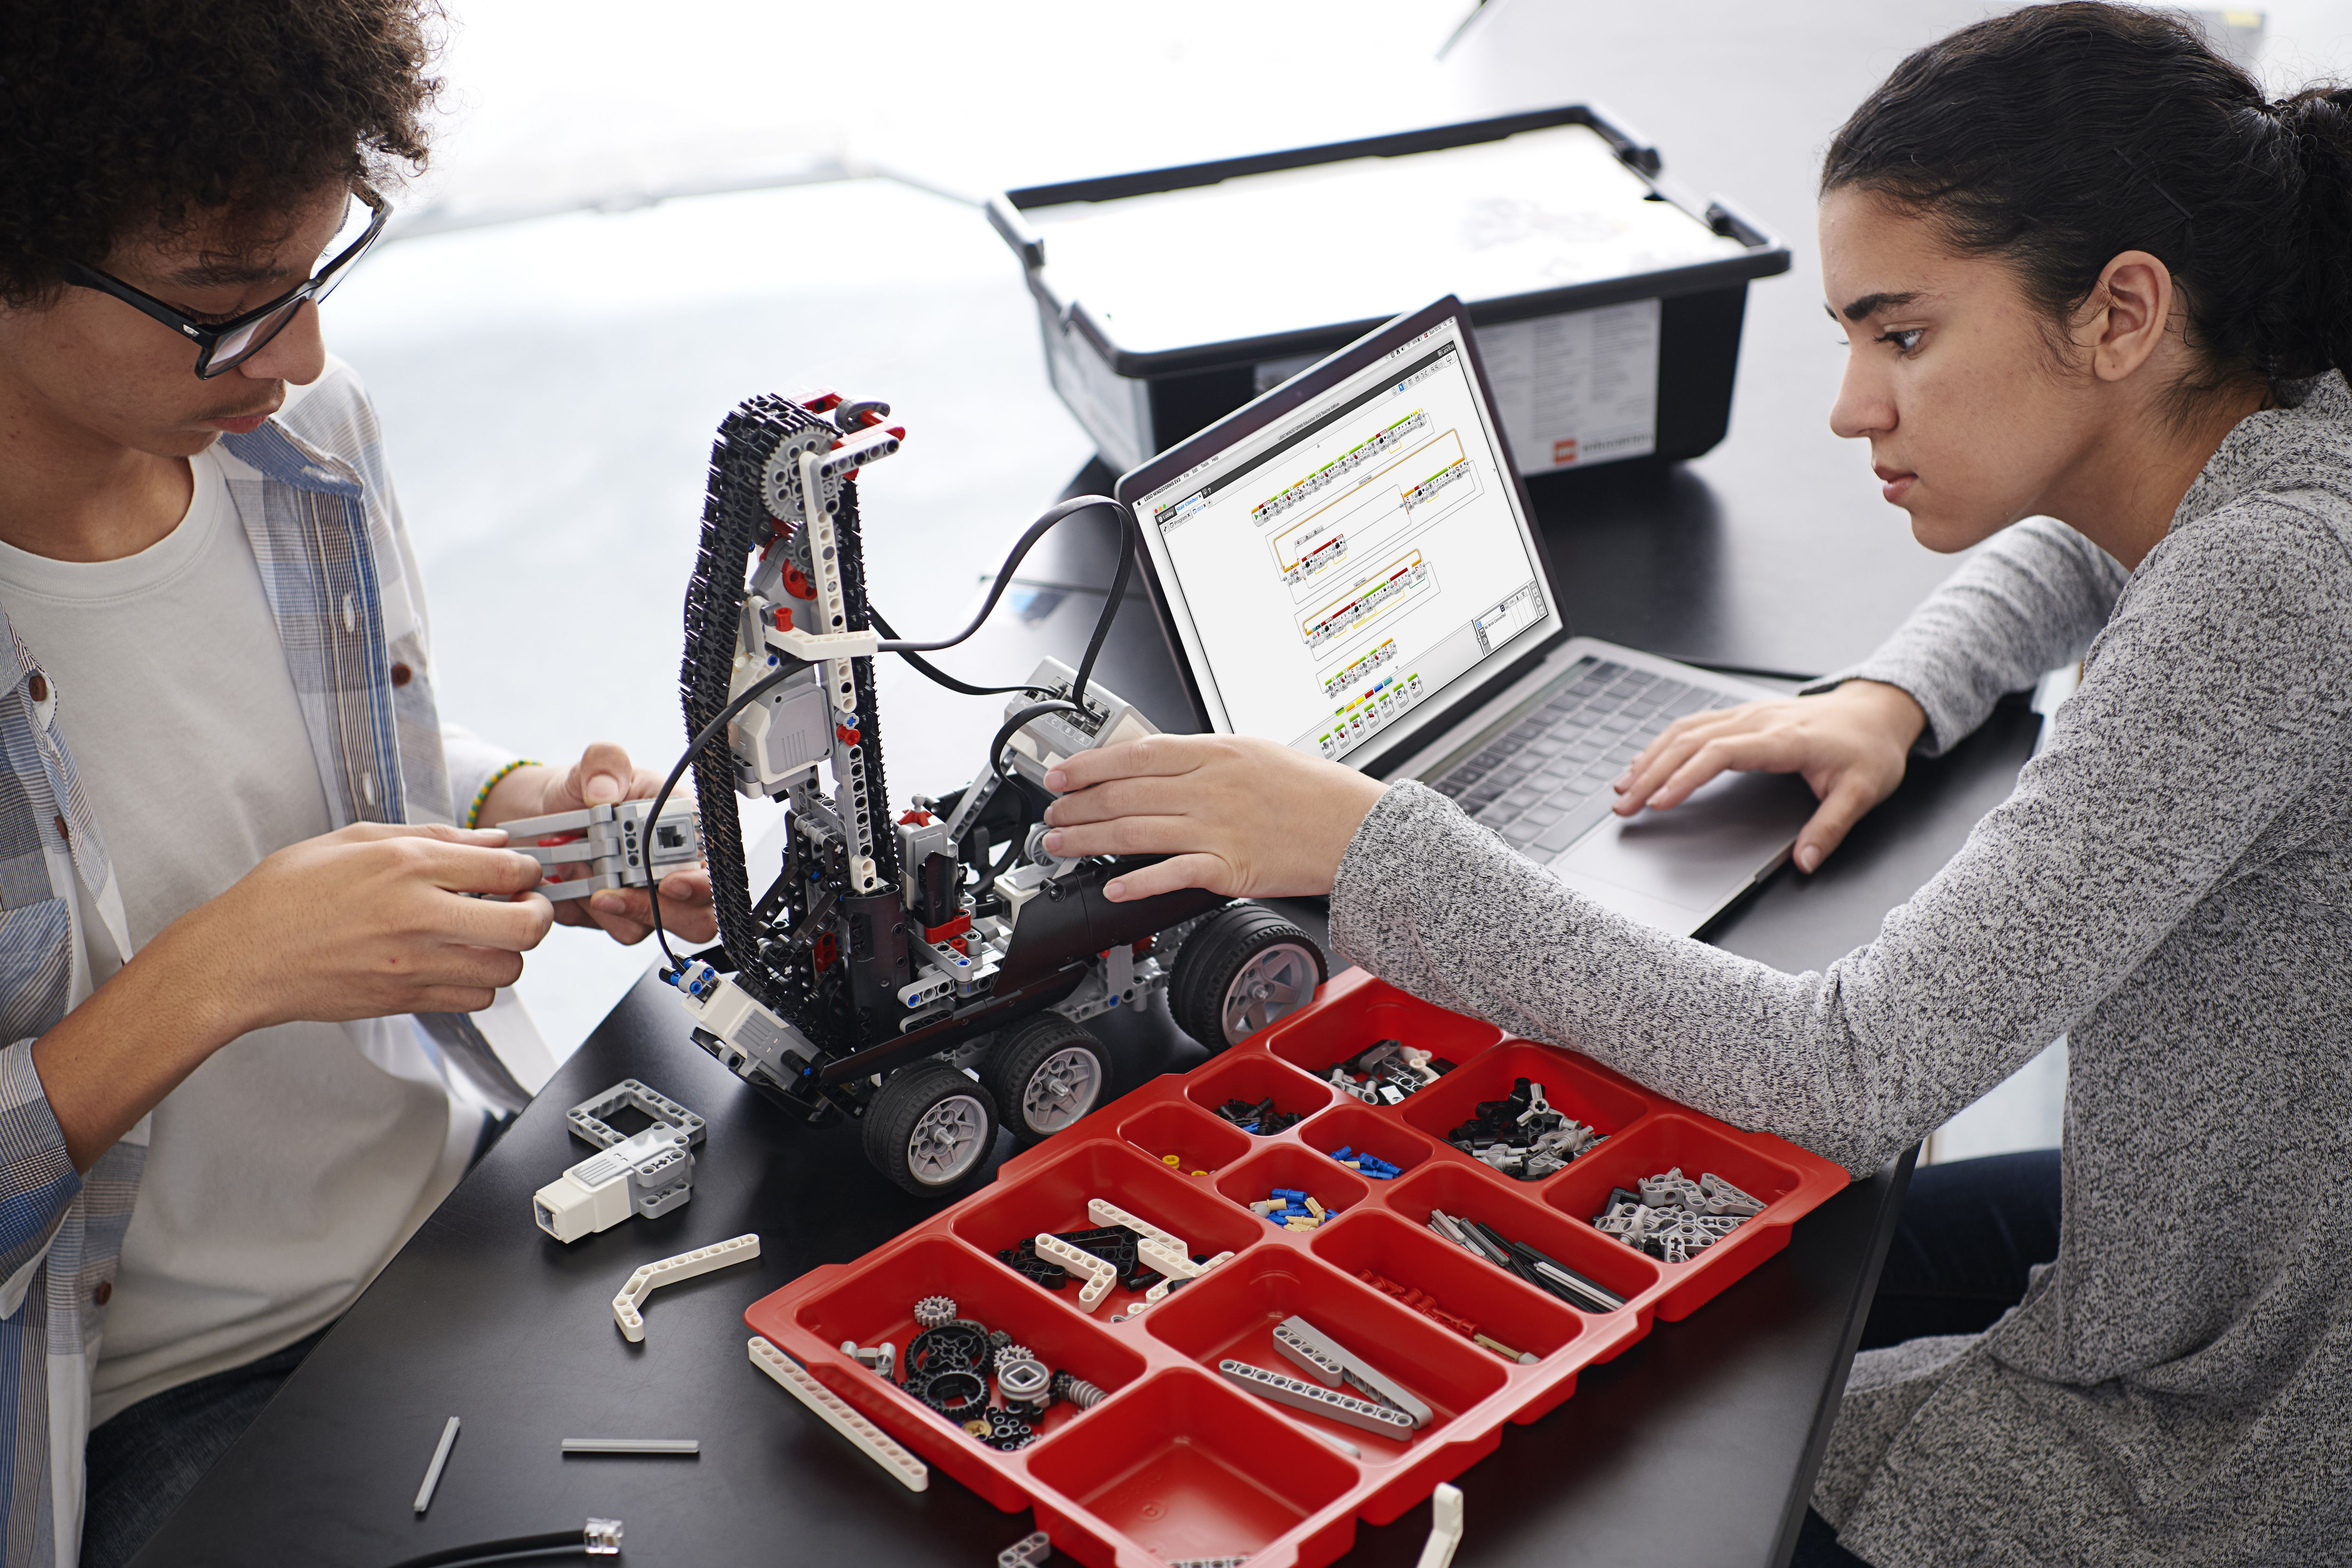 Further Education student using LEGO Education EV3 Mindstorms robot to learn how to program